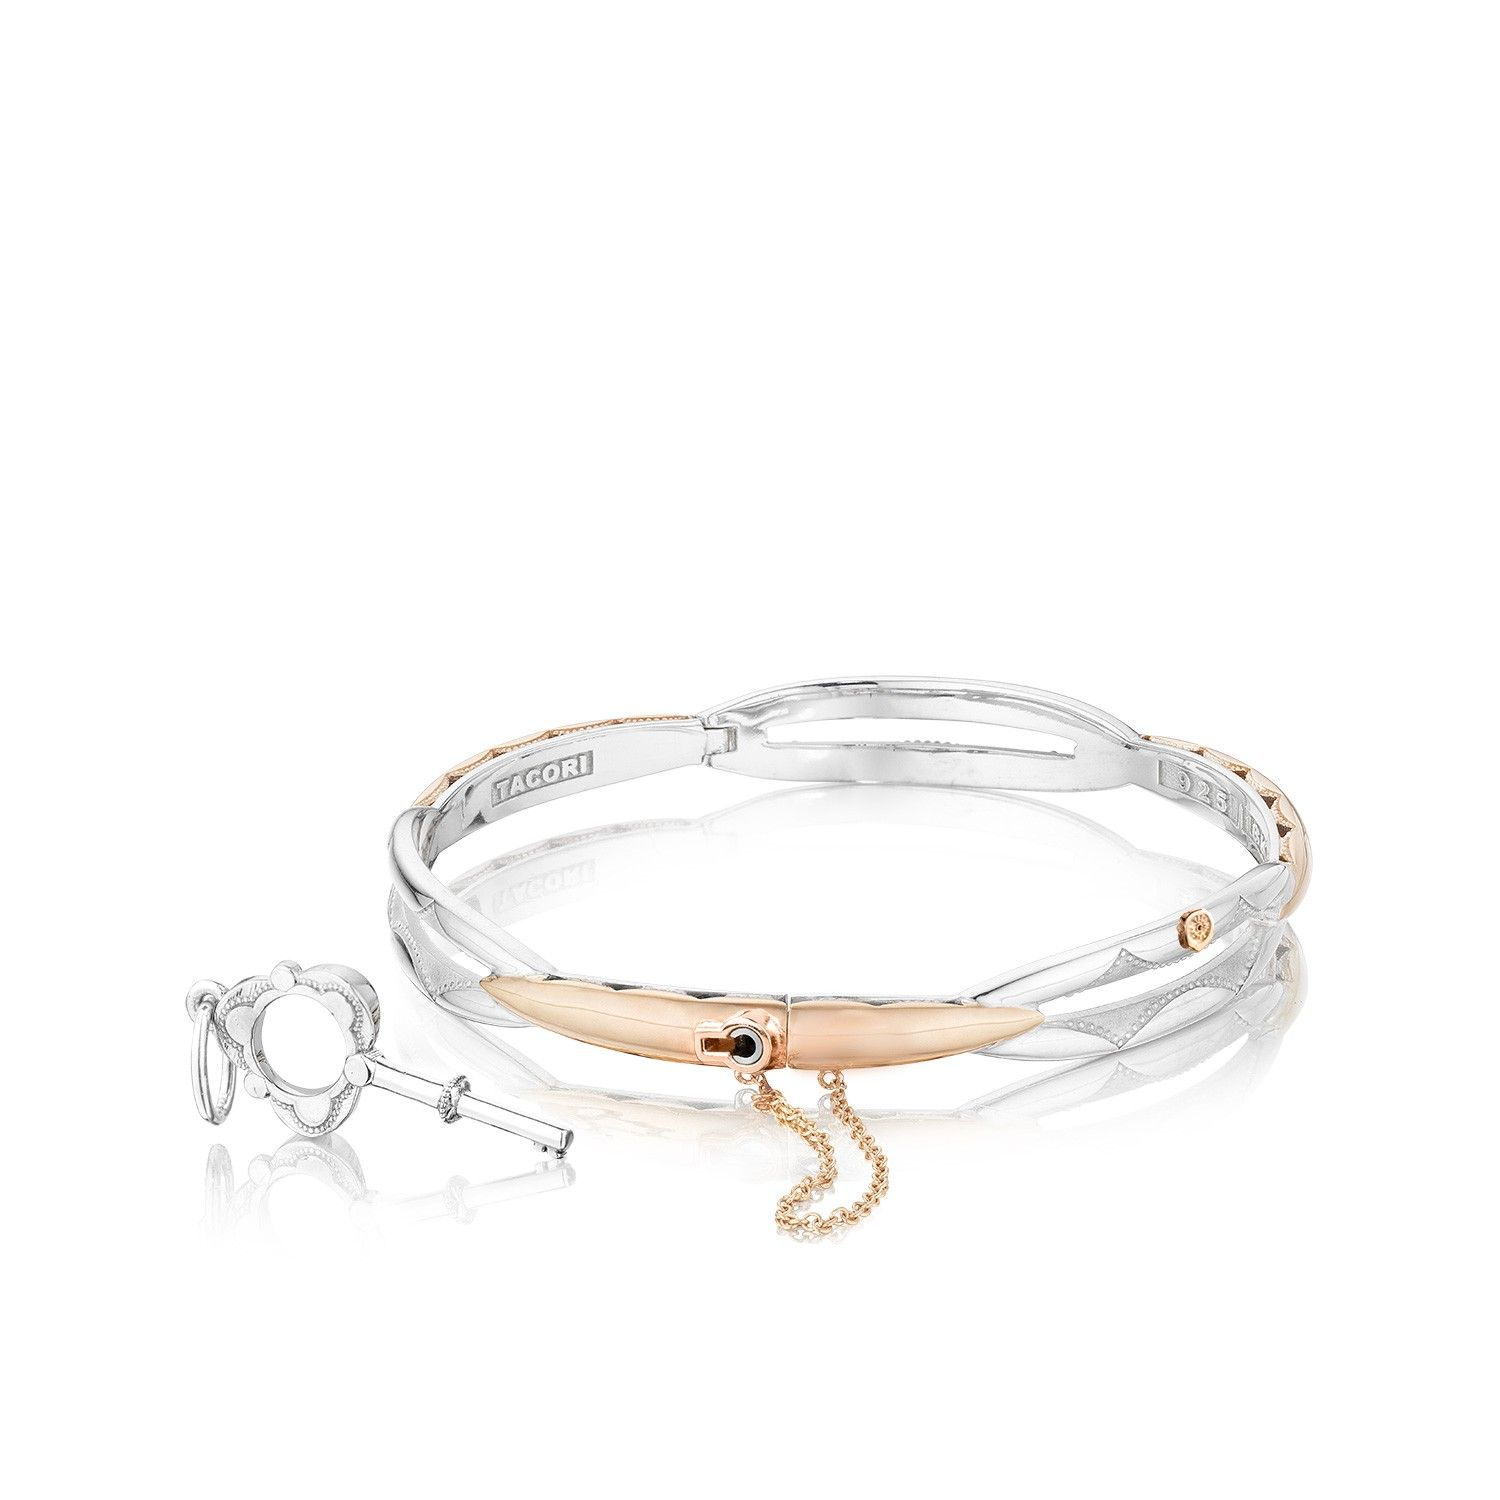 Between Tacori And Wendy Nguyen Of S Lookbook This Is The Promise Bracelet Must Be Locked Unlocked With A Key